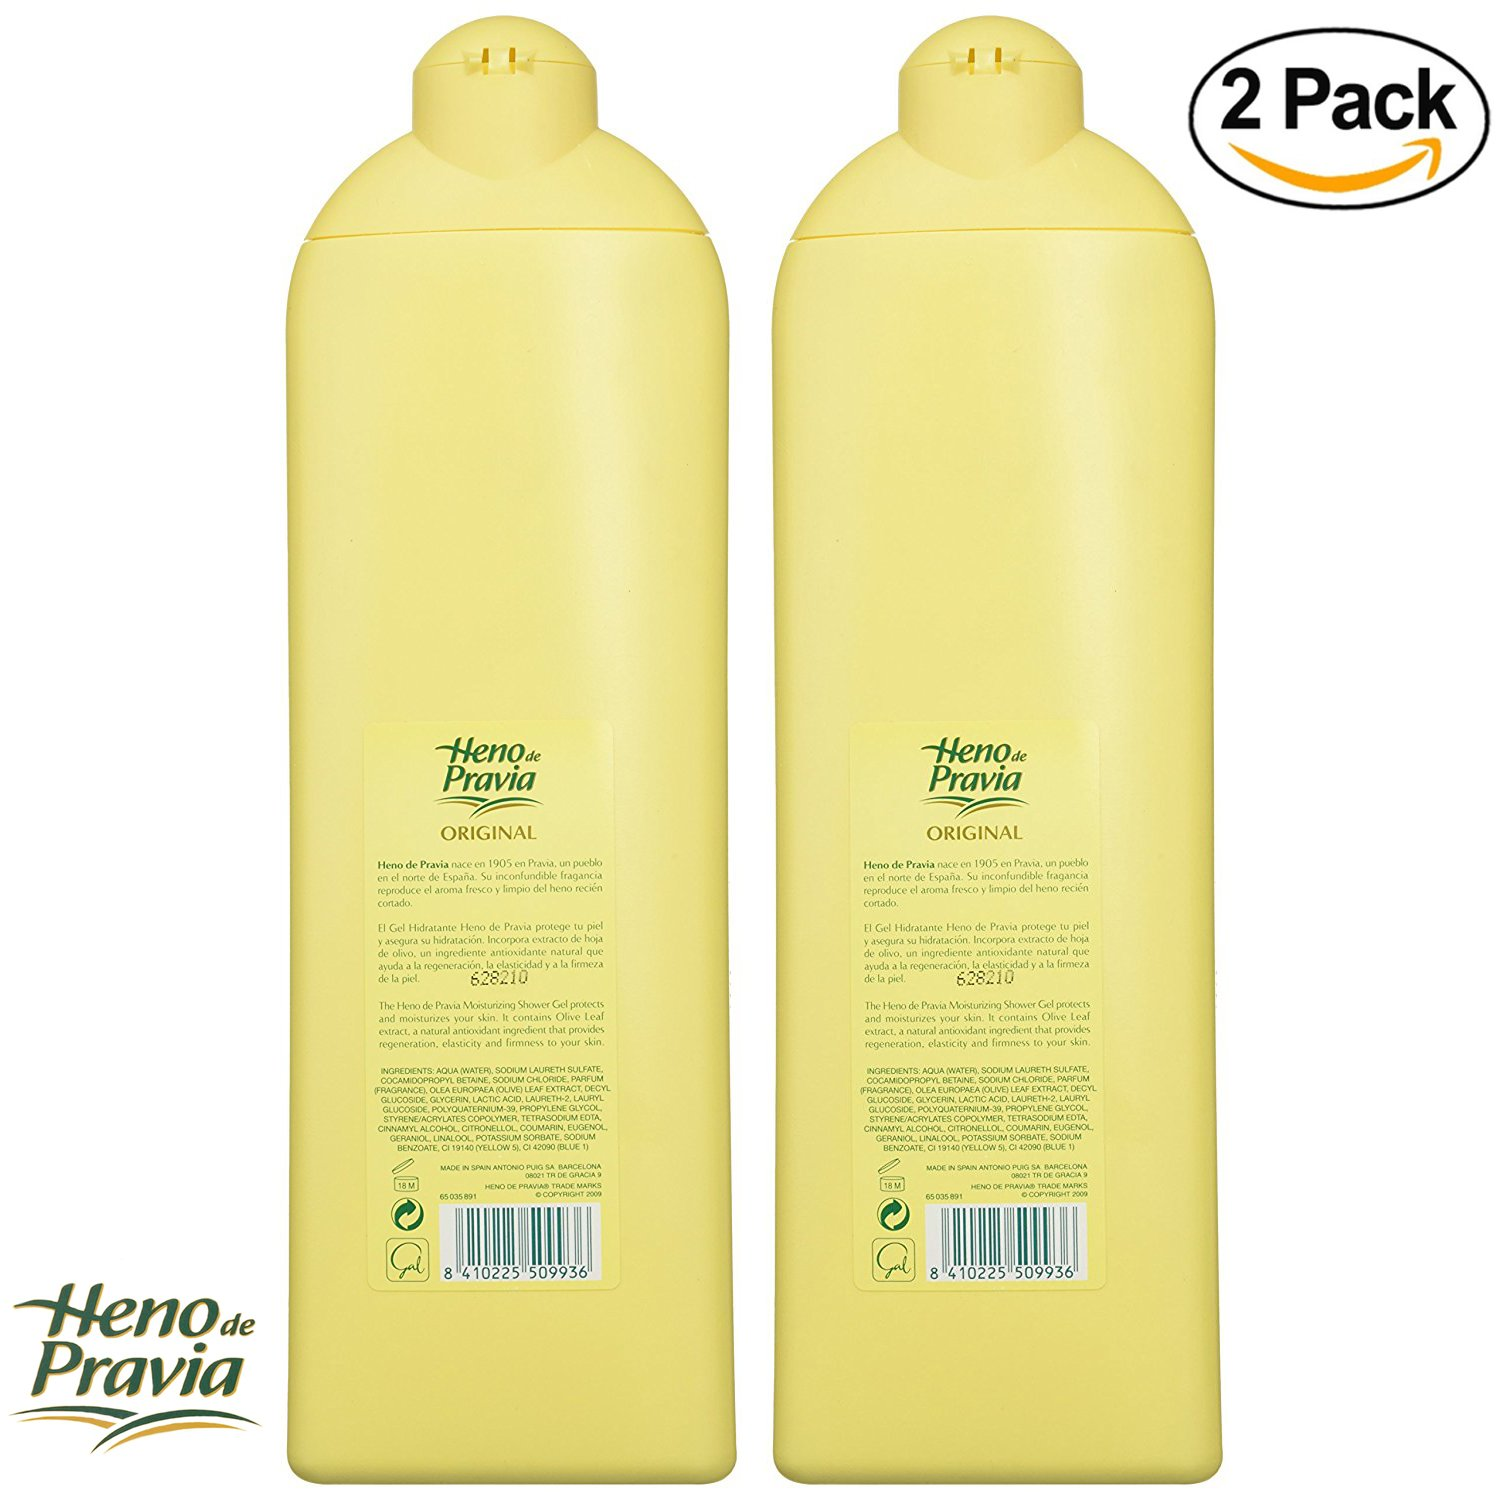 Amazon.com : Heno de Pravia Shower Gel 22.5 Oz. 2-PACK Original : Bath And Shower Gels : Beauty